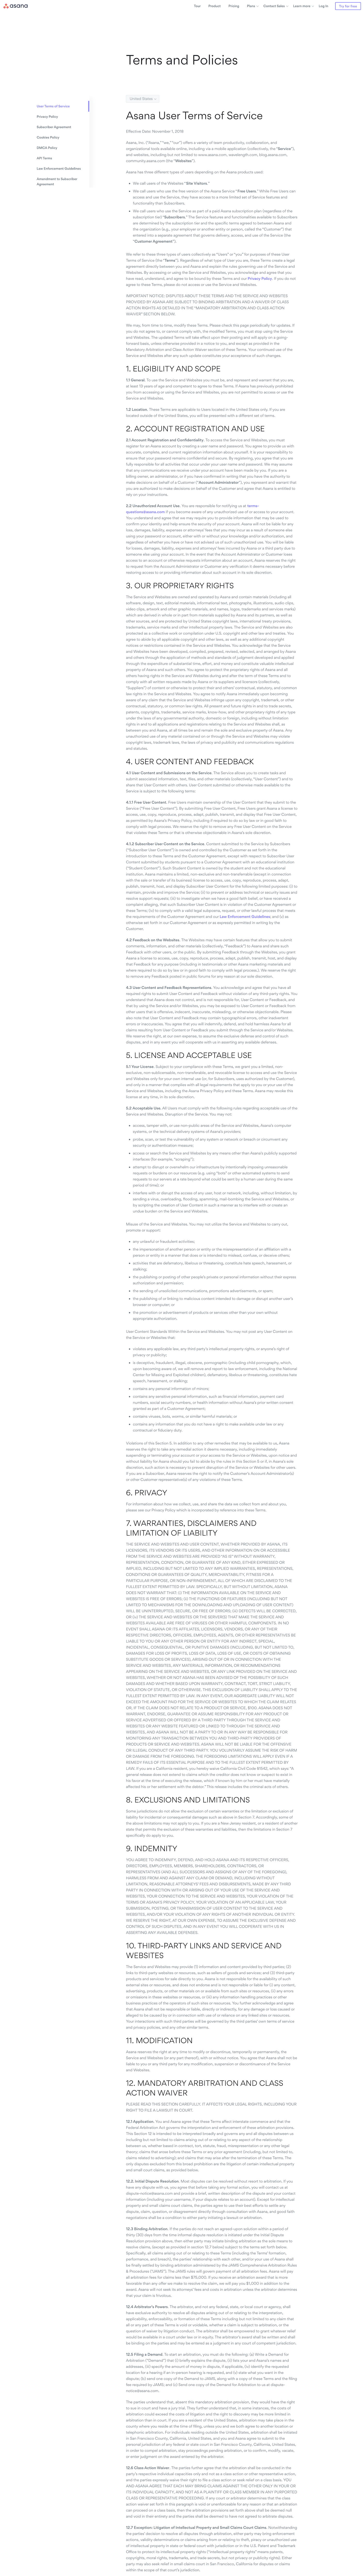 Screenshot of the Terms and Policies page from the Asana website.